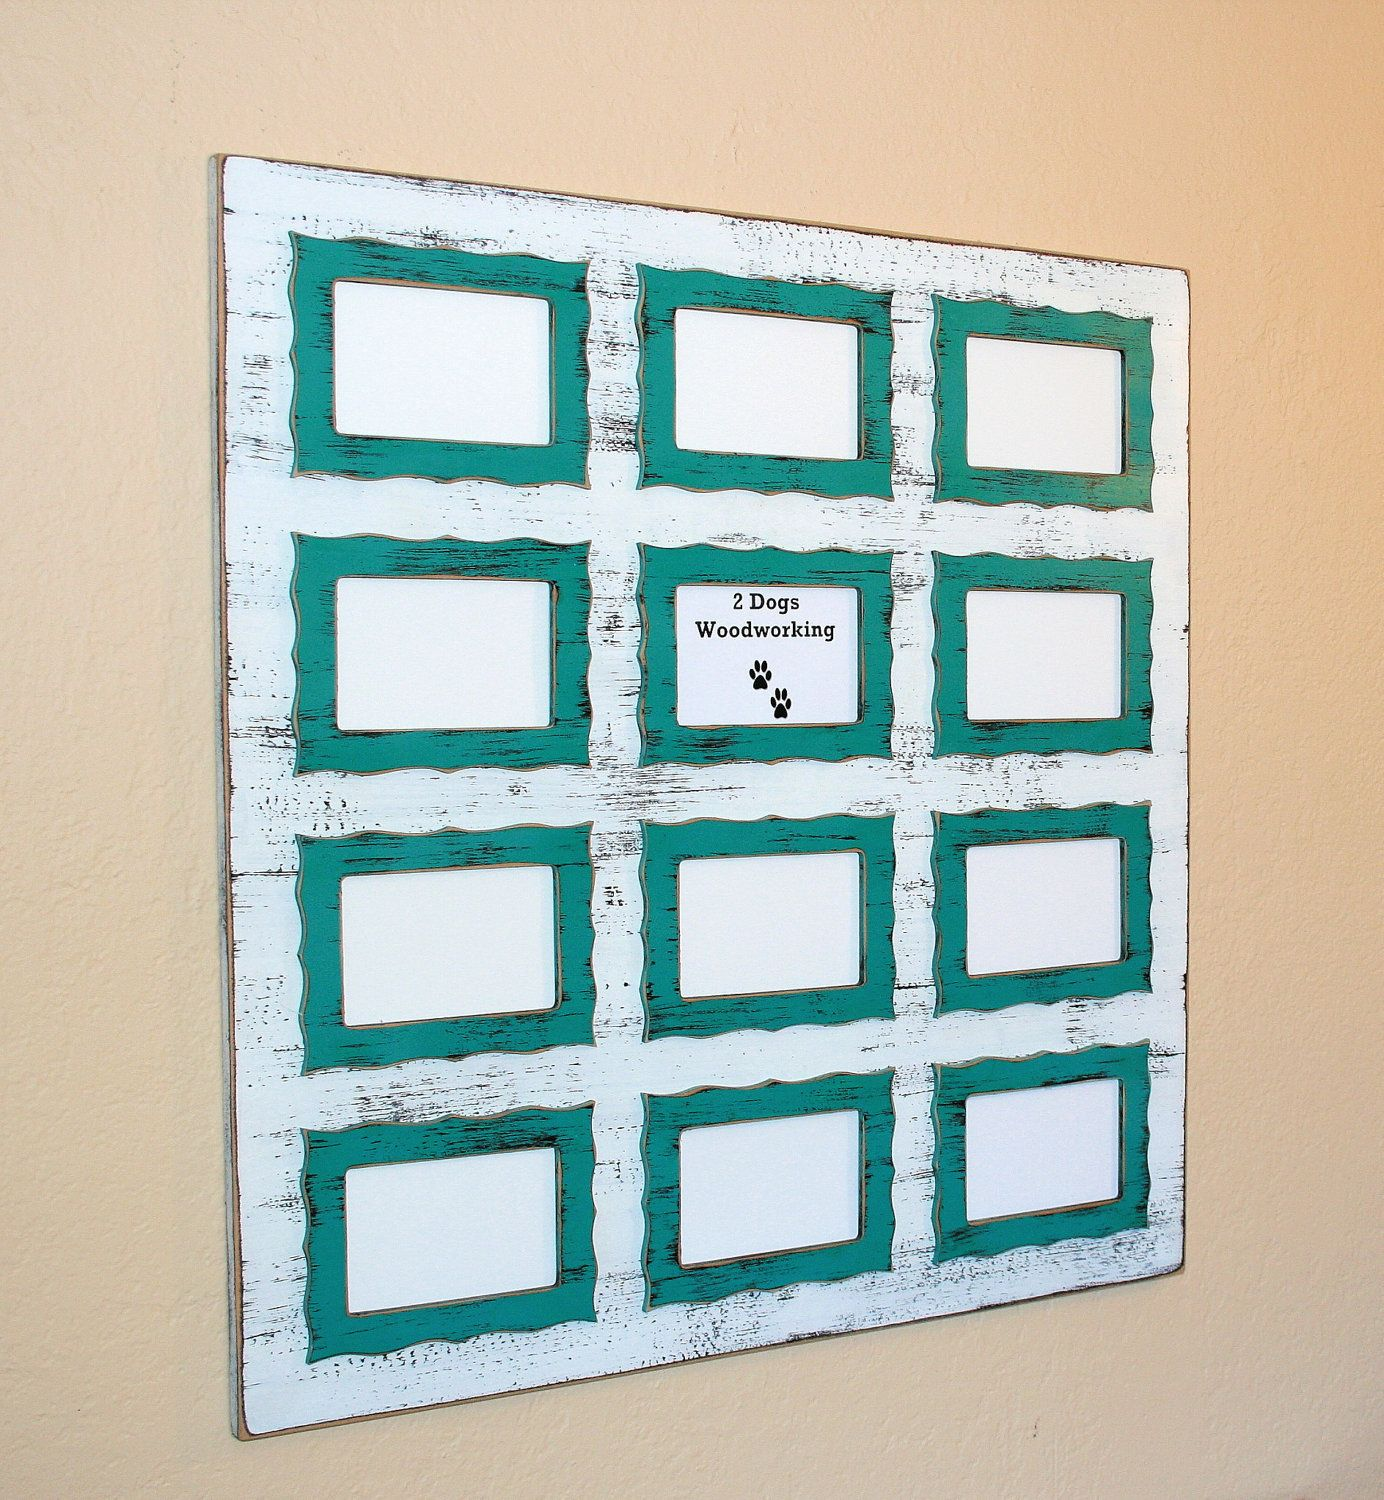 collage frames to hold 12 3x5 photos   Collage Multiple photo ...